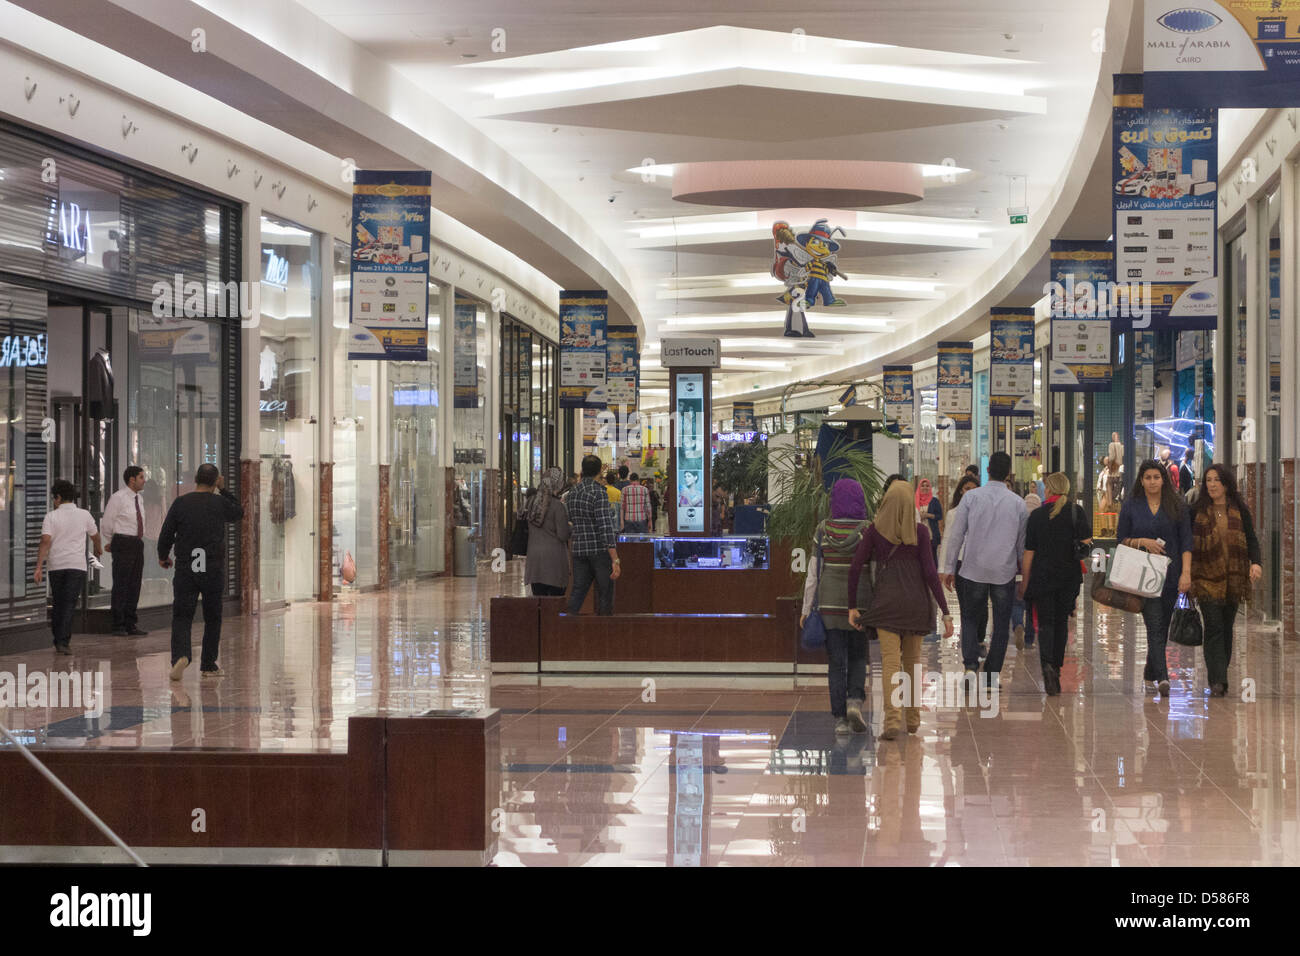 customers shopping, Mall of Arabia Cairo, Juhayna Square, 6th of October City, Giza, EGYPT Stock Photo